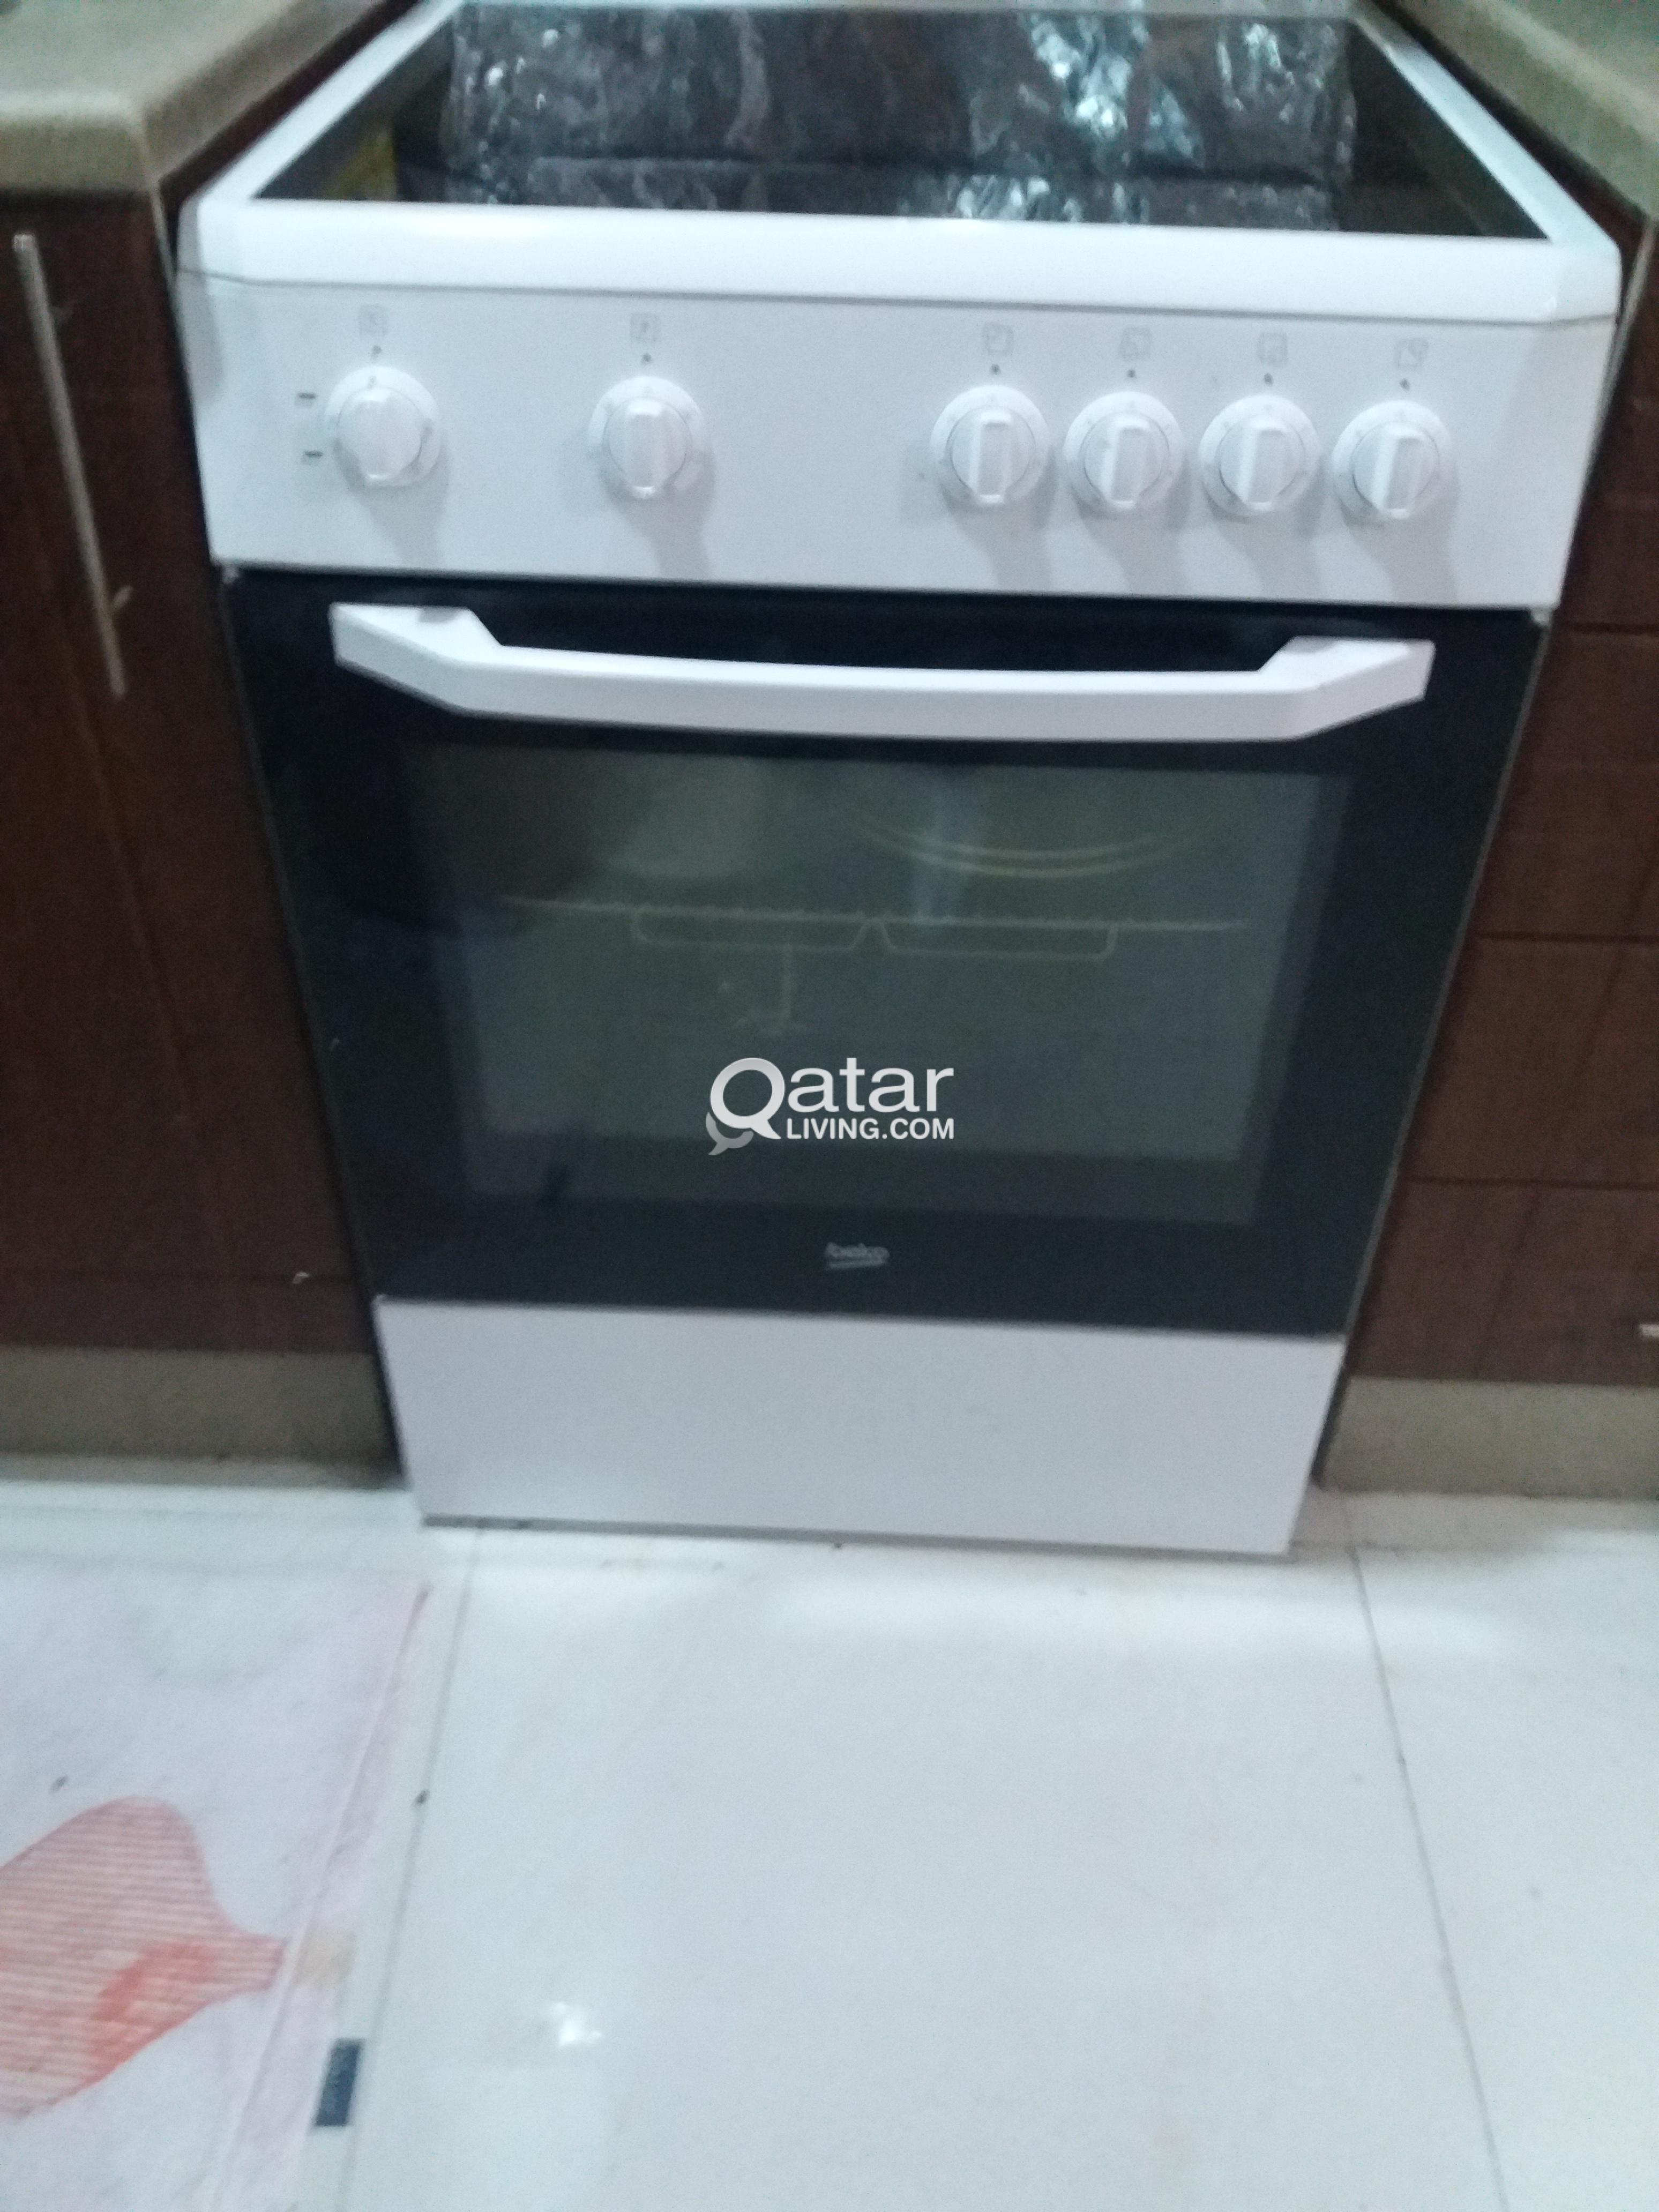 Furniture and appliances for sale   Qatar Living